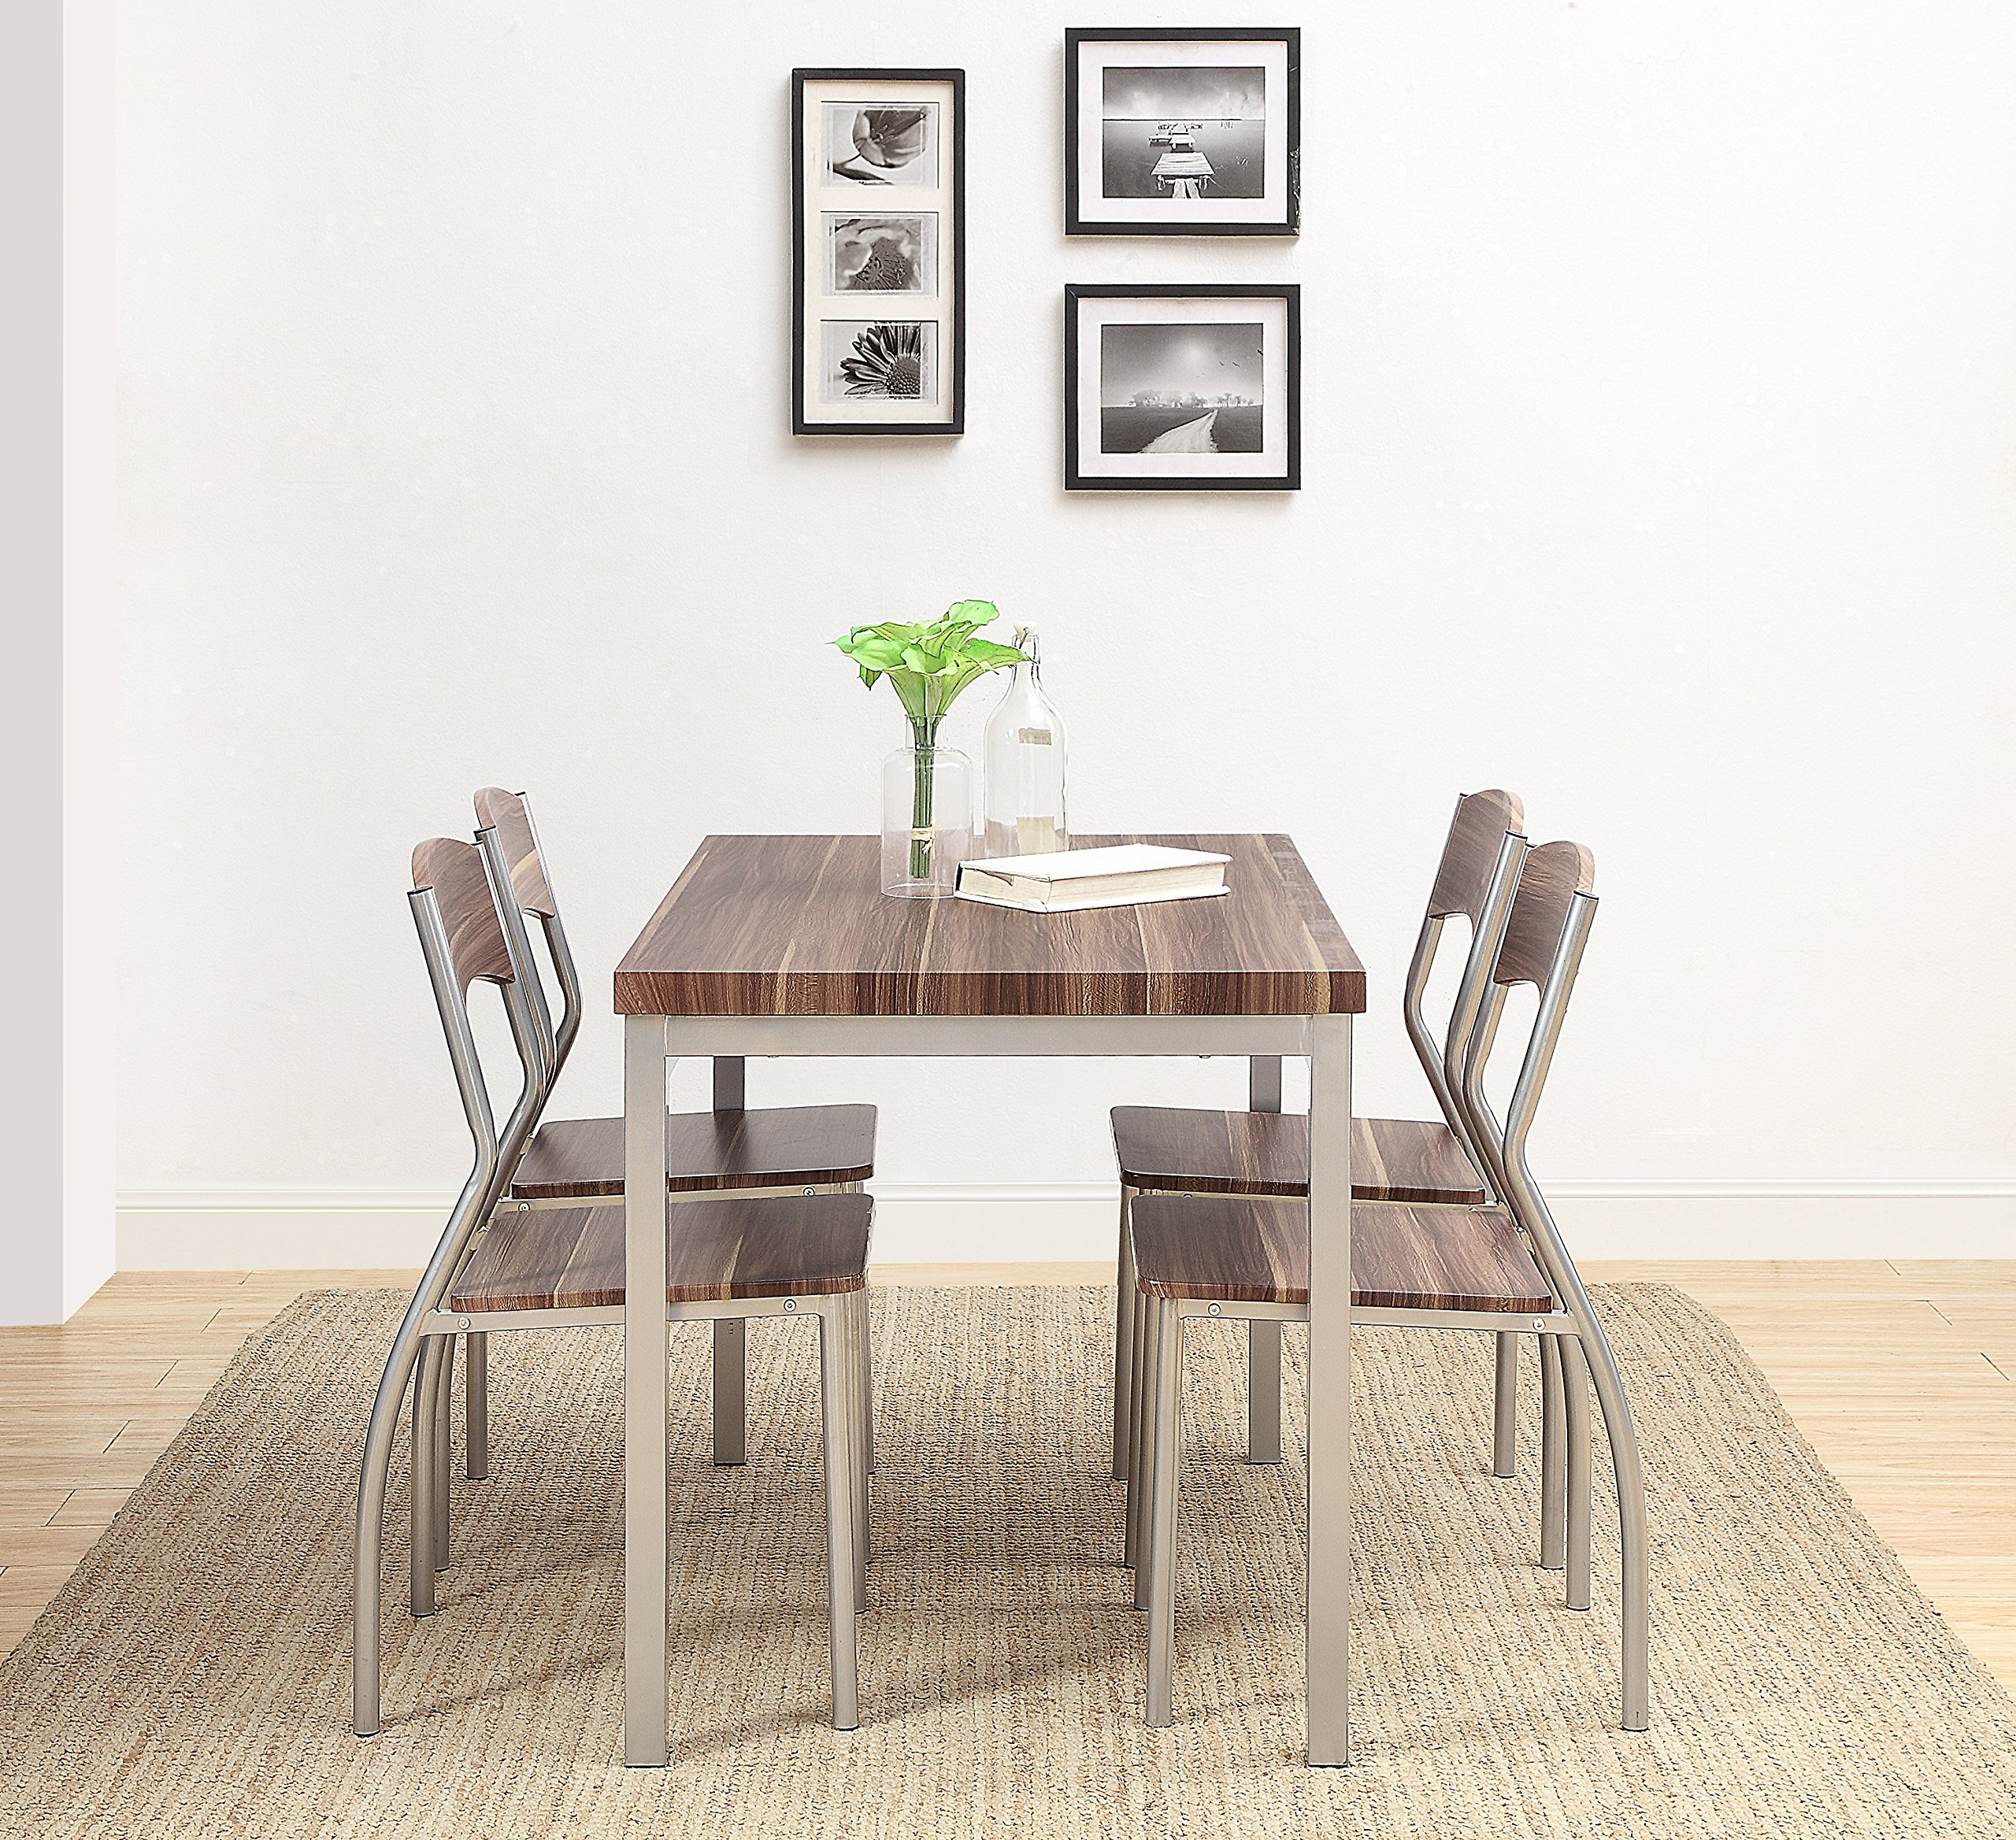 Abington Lane 5-Piece Dining Table Set with 4 Chairs - Modern and Sleek Dinette (Cedarwood Finish) by Abington Lane (Image #5)